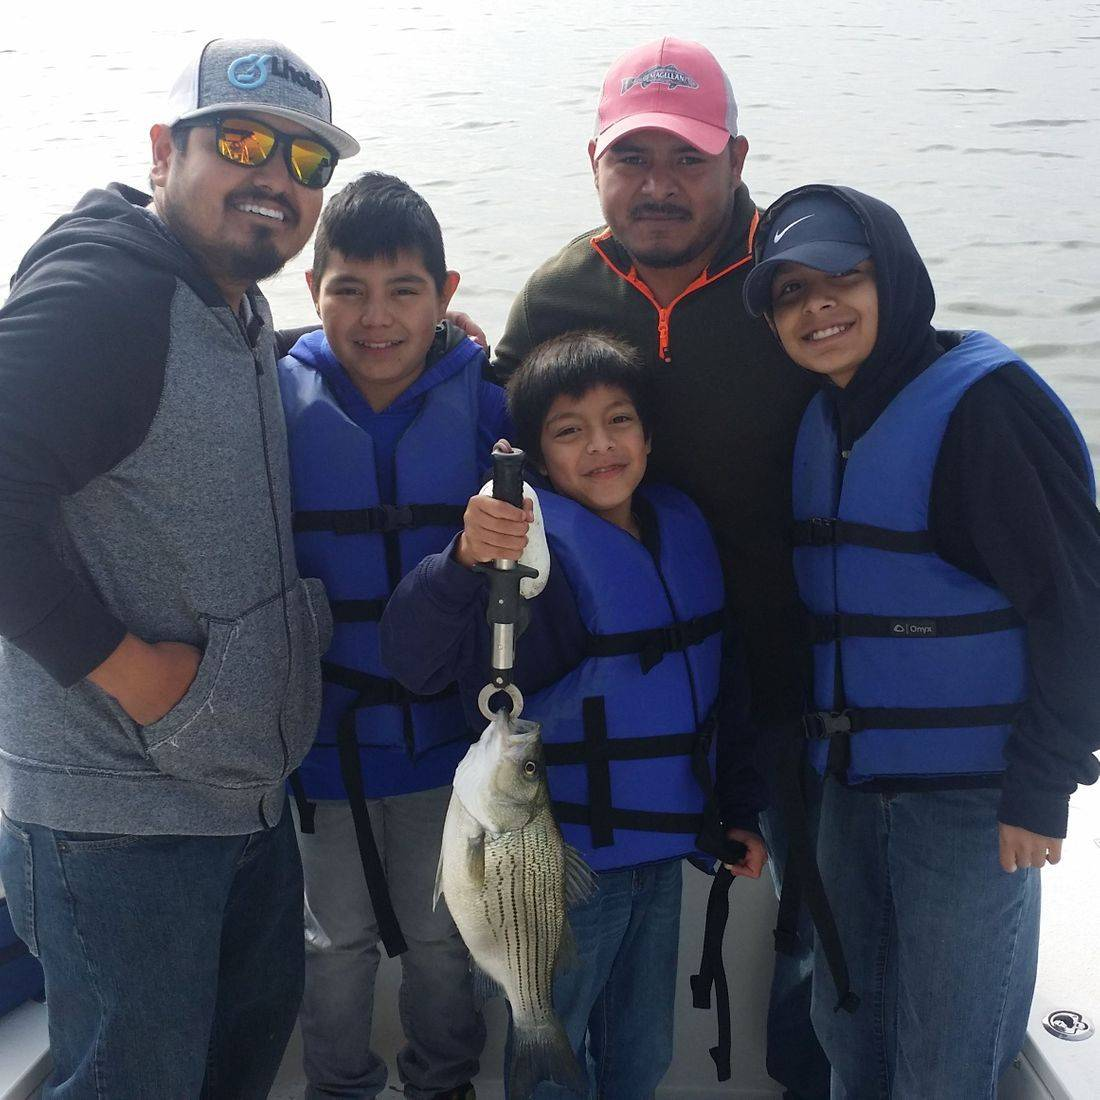 Bones Fishing Guide Service providing some fantastic redfish and striped bass fishing. San Antonio offers some amazing at Brauning Lake, Calaveras Lake and Canyon Lake.